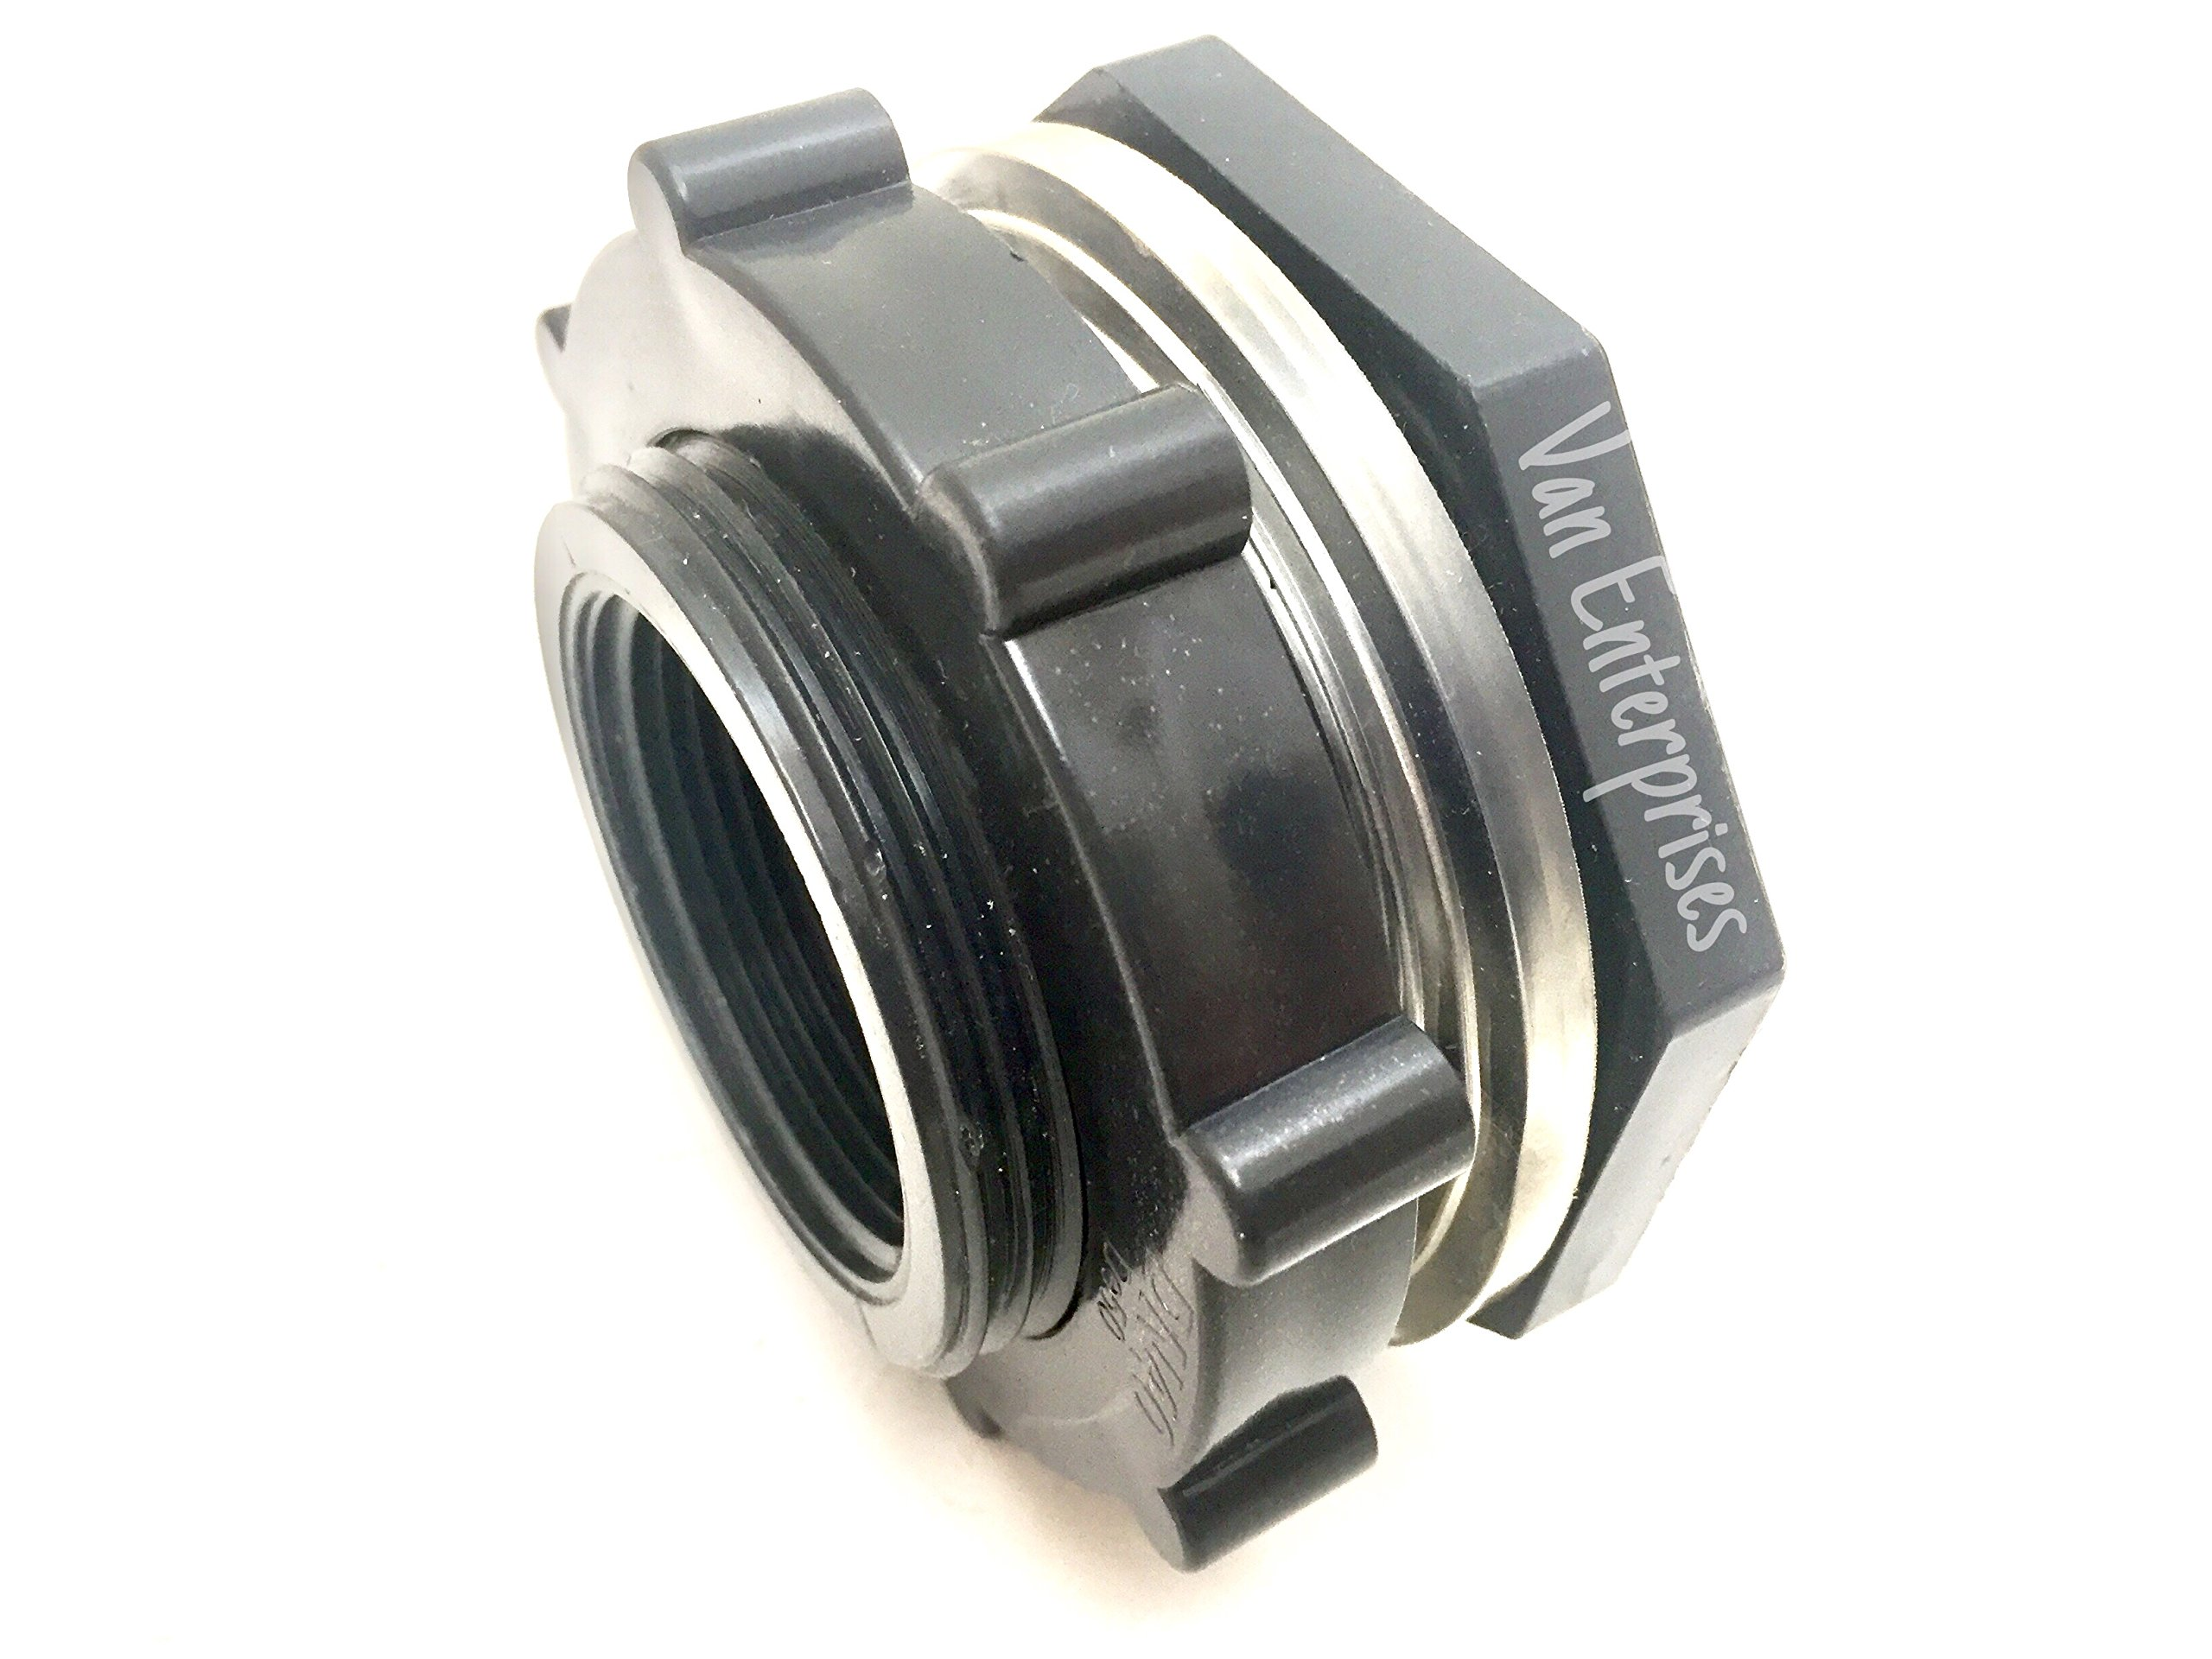 2'' PRO SERIES PVC Bulkhead Tank Fitting Adapter For Rain Barrels, Aquarium, Water Tanks, Ponds